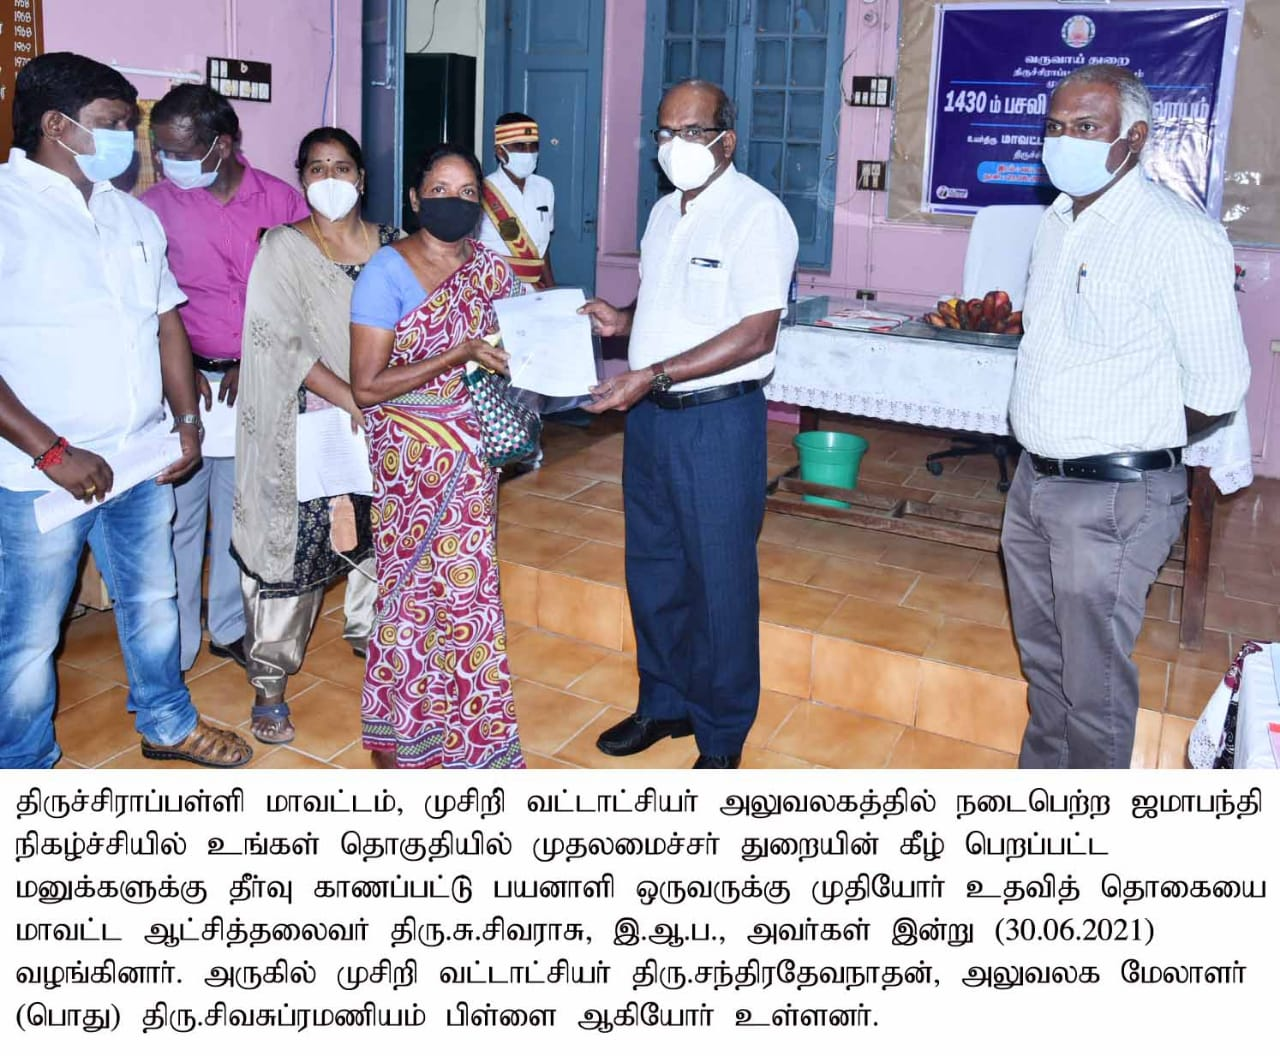 District Collector distributess welfare assistance to the scheme beneficiaries during Jamabandi